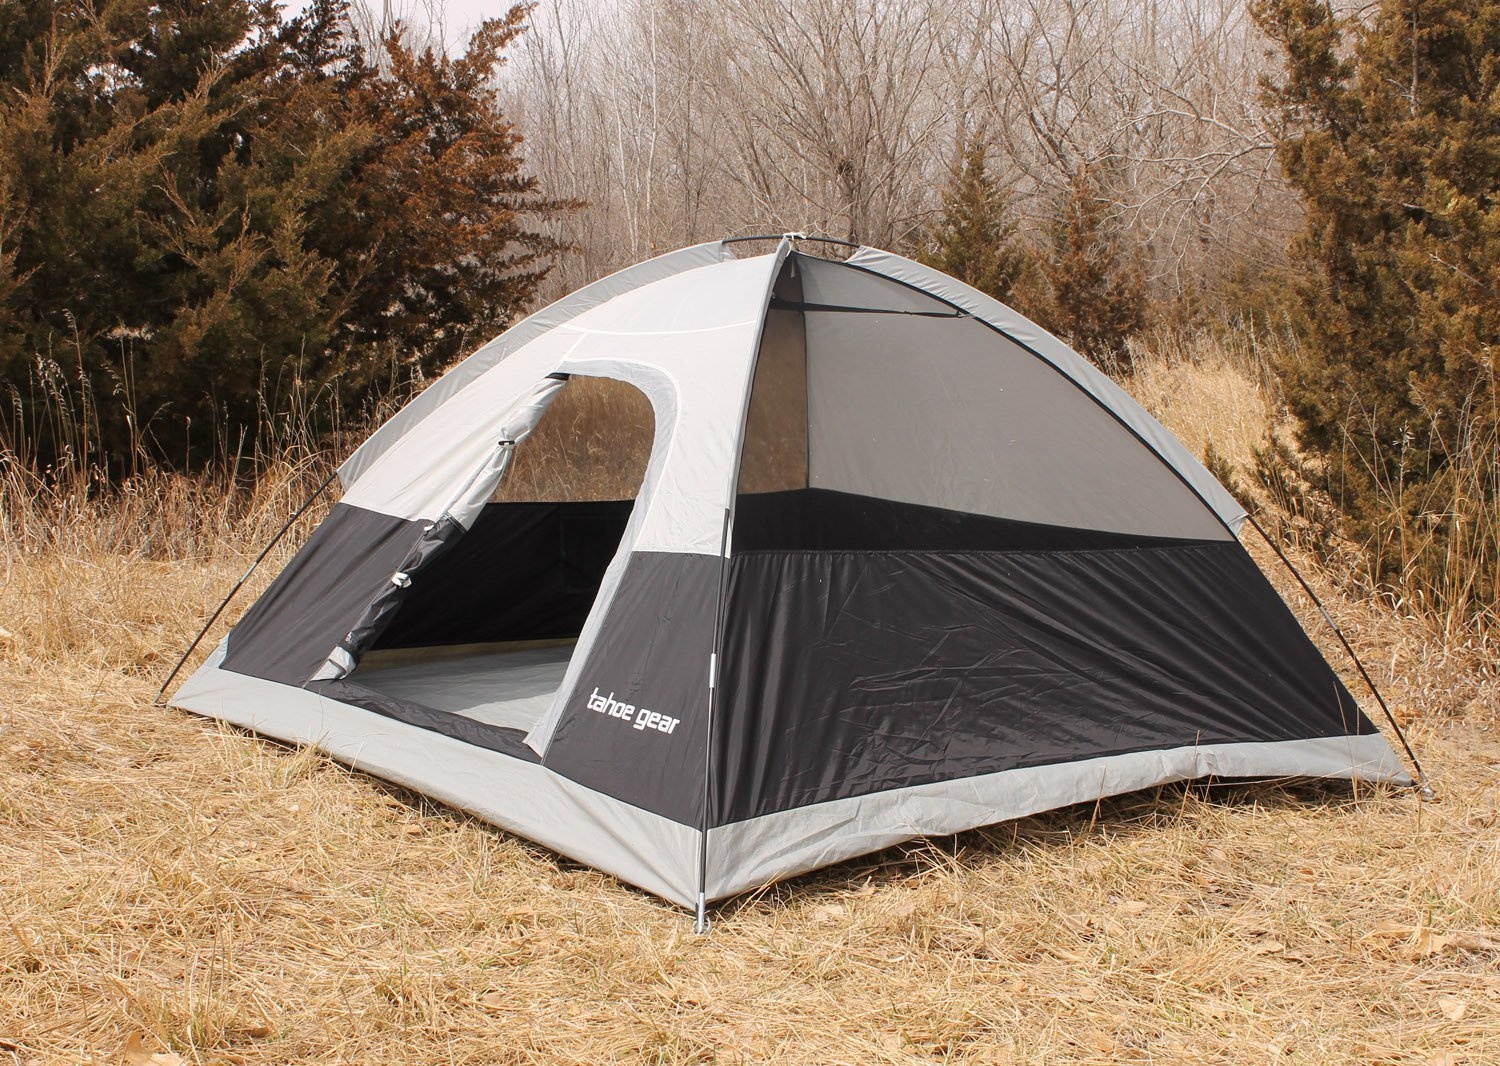 Amazon.com  Tahoe Gear Powell 3-Person 3-Season Dome C&ing Tent Black/Grey | TGT-POWELL-3  Sports u0026 Outdoors & Amazon.com : Tahoe Gear Powell 3-Person 3-Season Dome Camping Tent ...